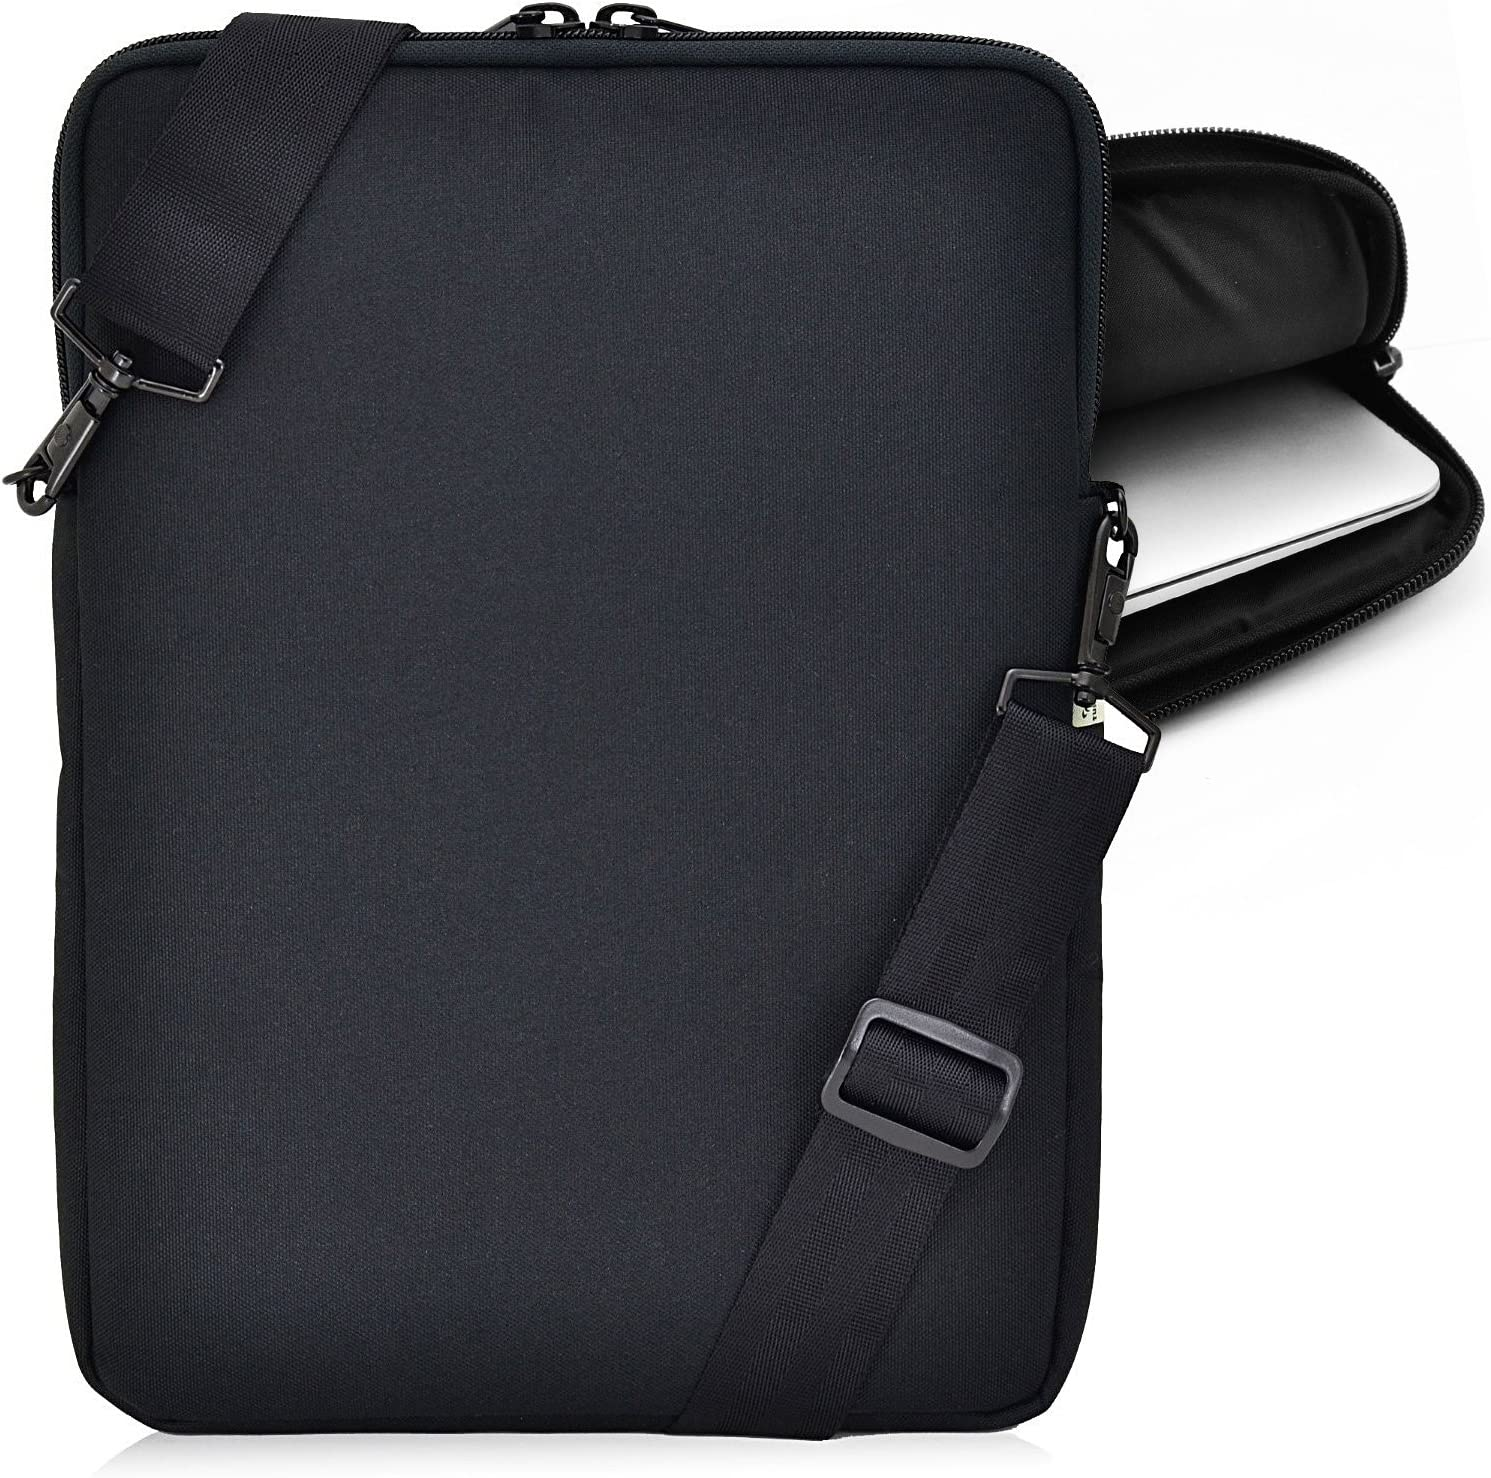 Turtleback Universal Laptop and Chromebook Pouch Bag with Shoulder Strap - Fits Devices up to 11